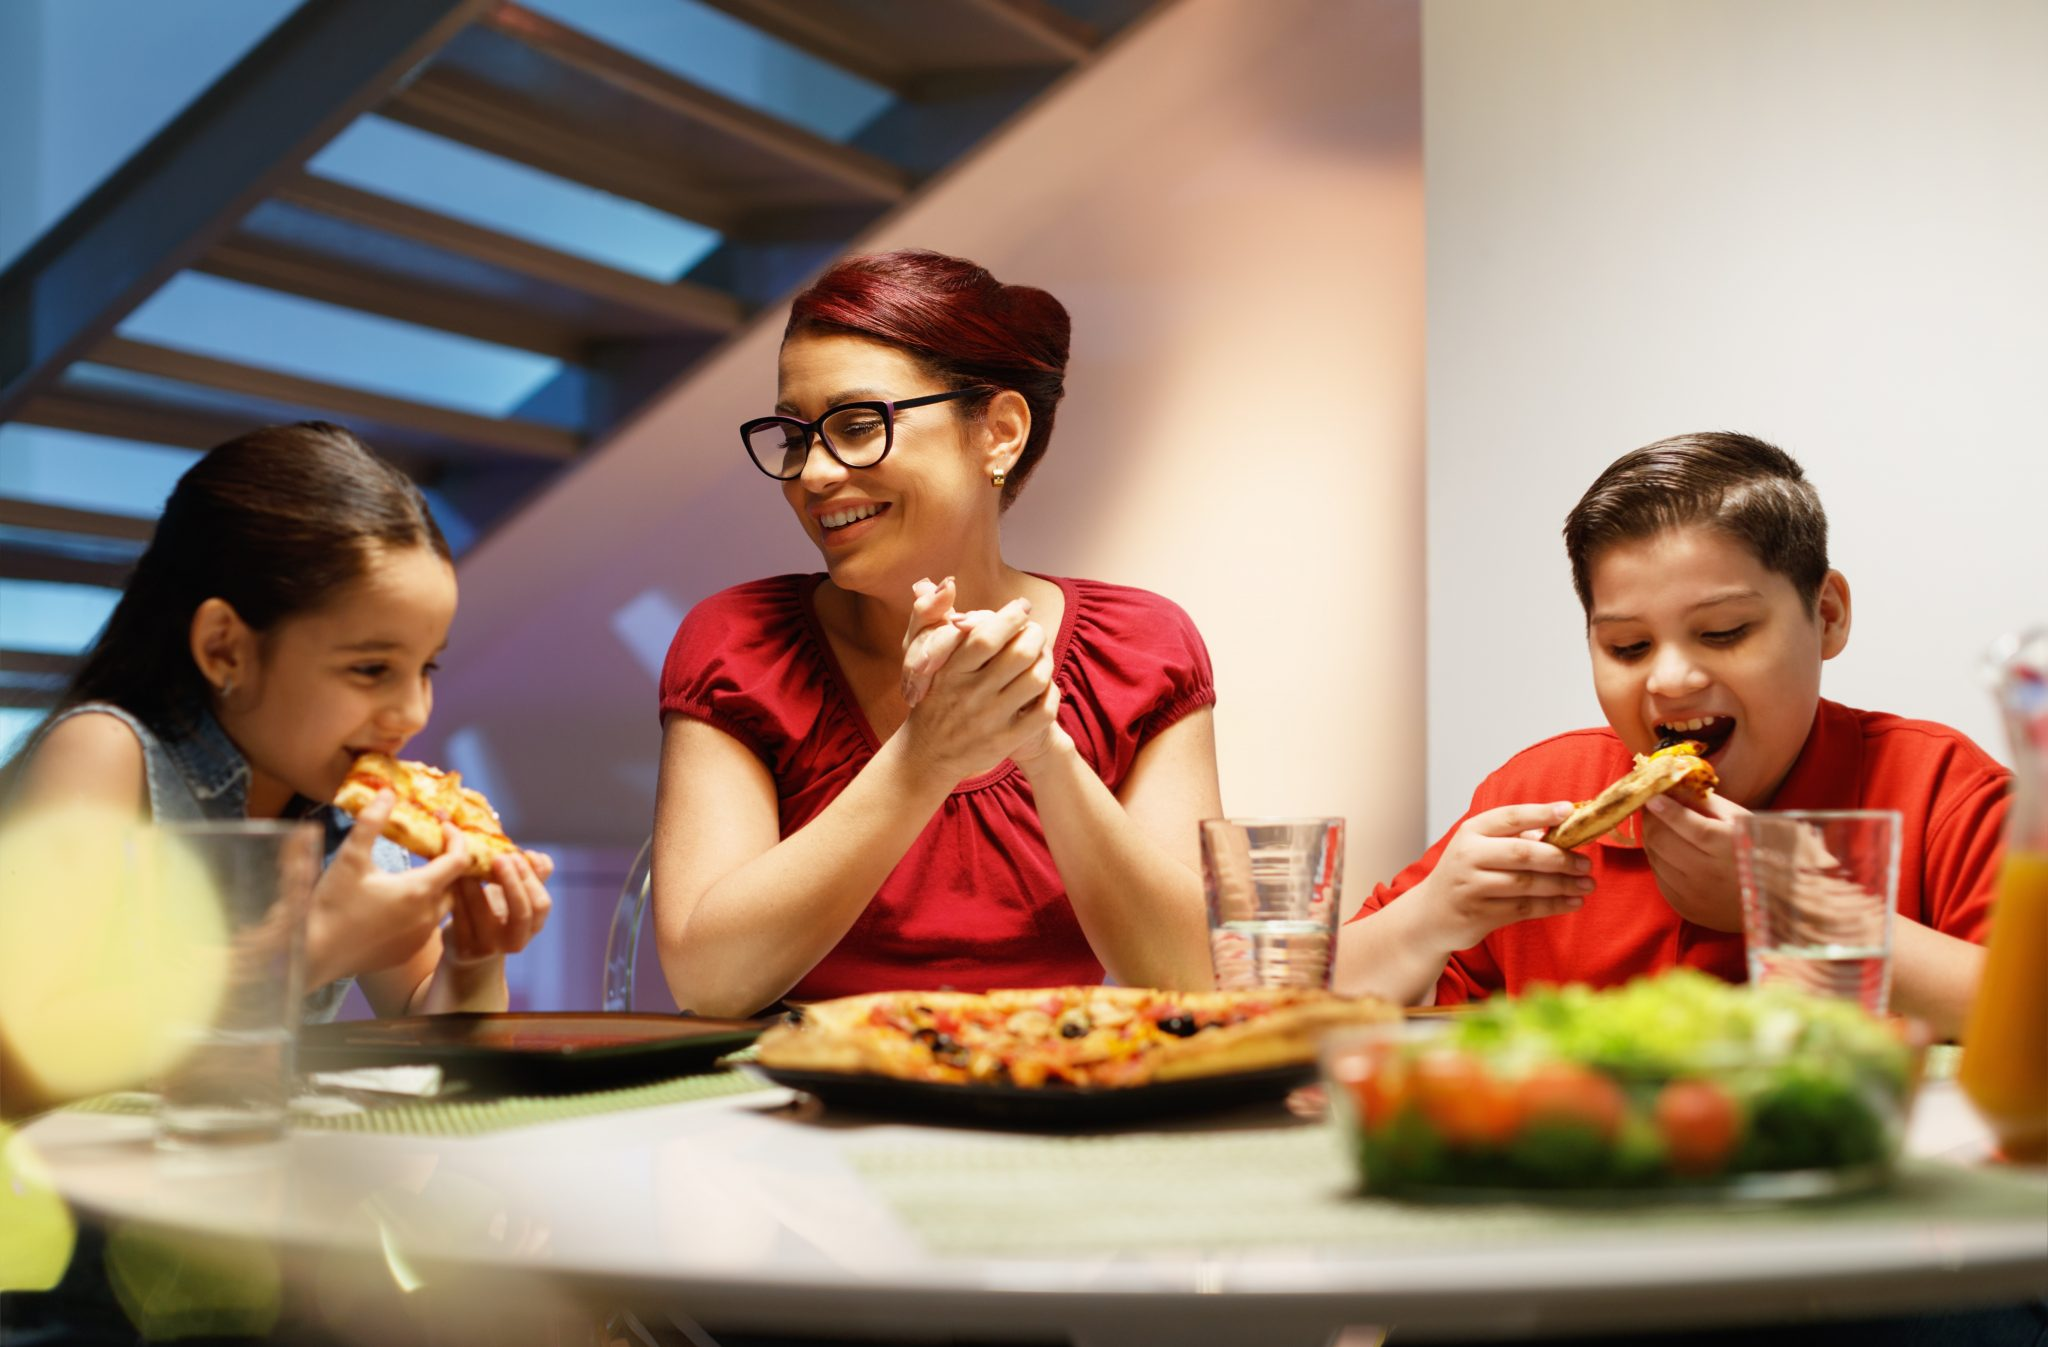 Hispanic family with mom, son and daughter having dinner at home and eating homemade pizza. Latino people with mother, boy and girl during meal.